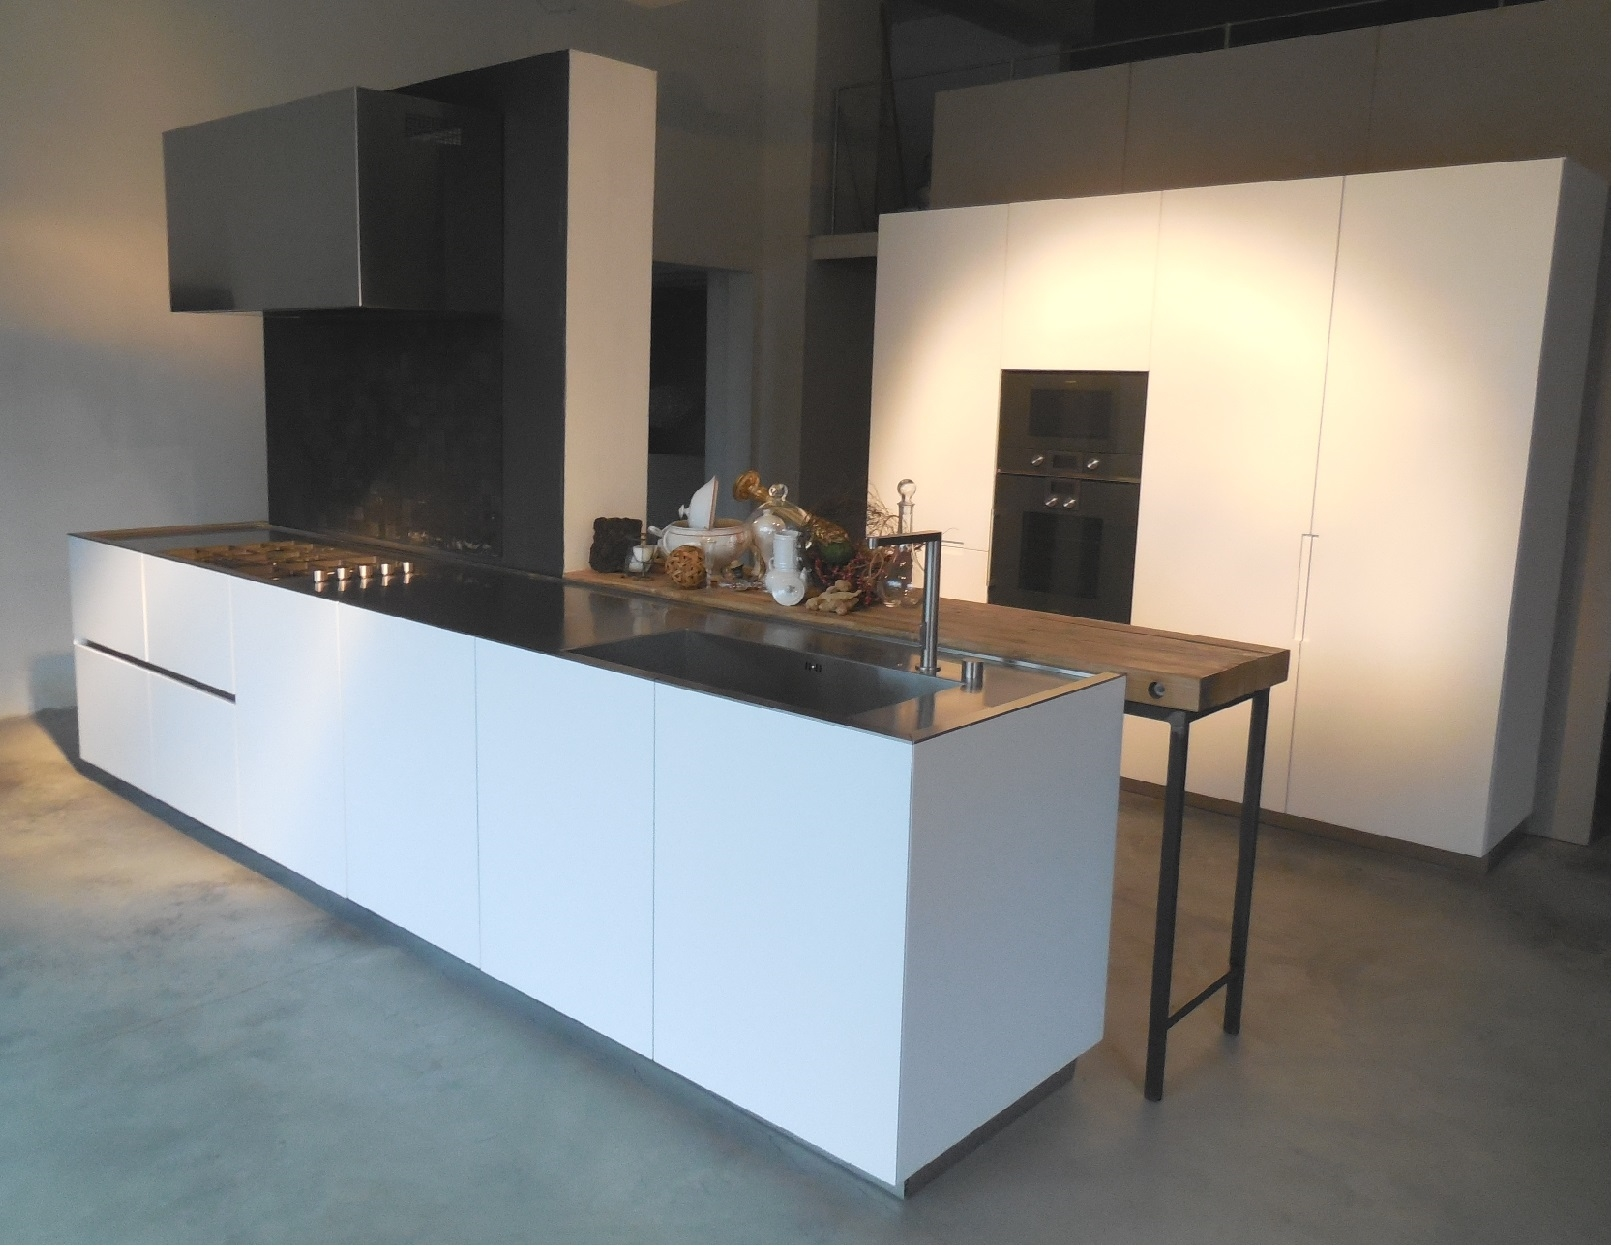 Stunning Cucine Boffi Outlet Images - Home Design - joygree.info